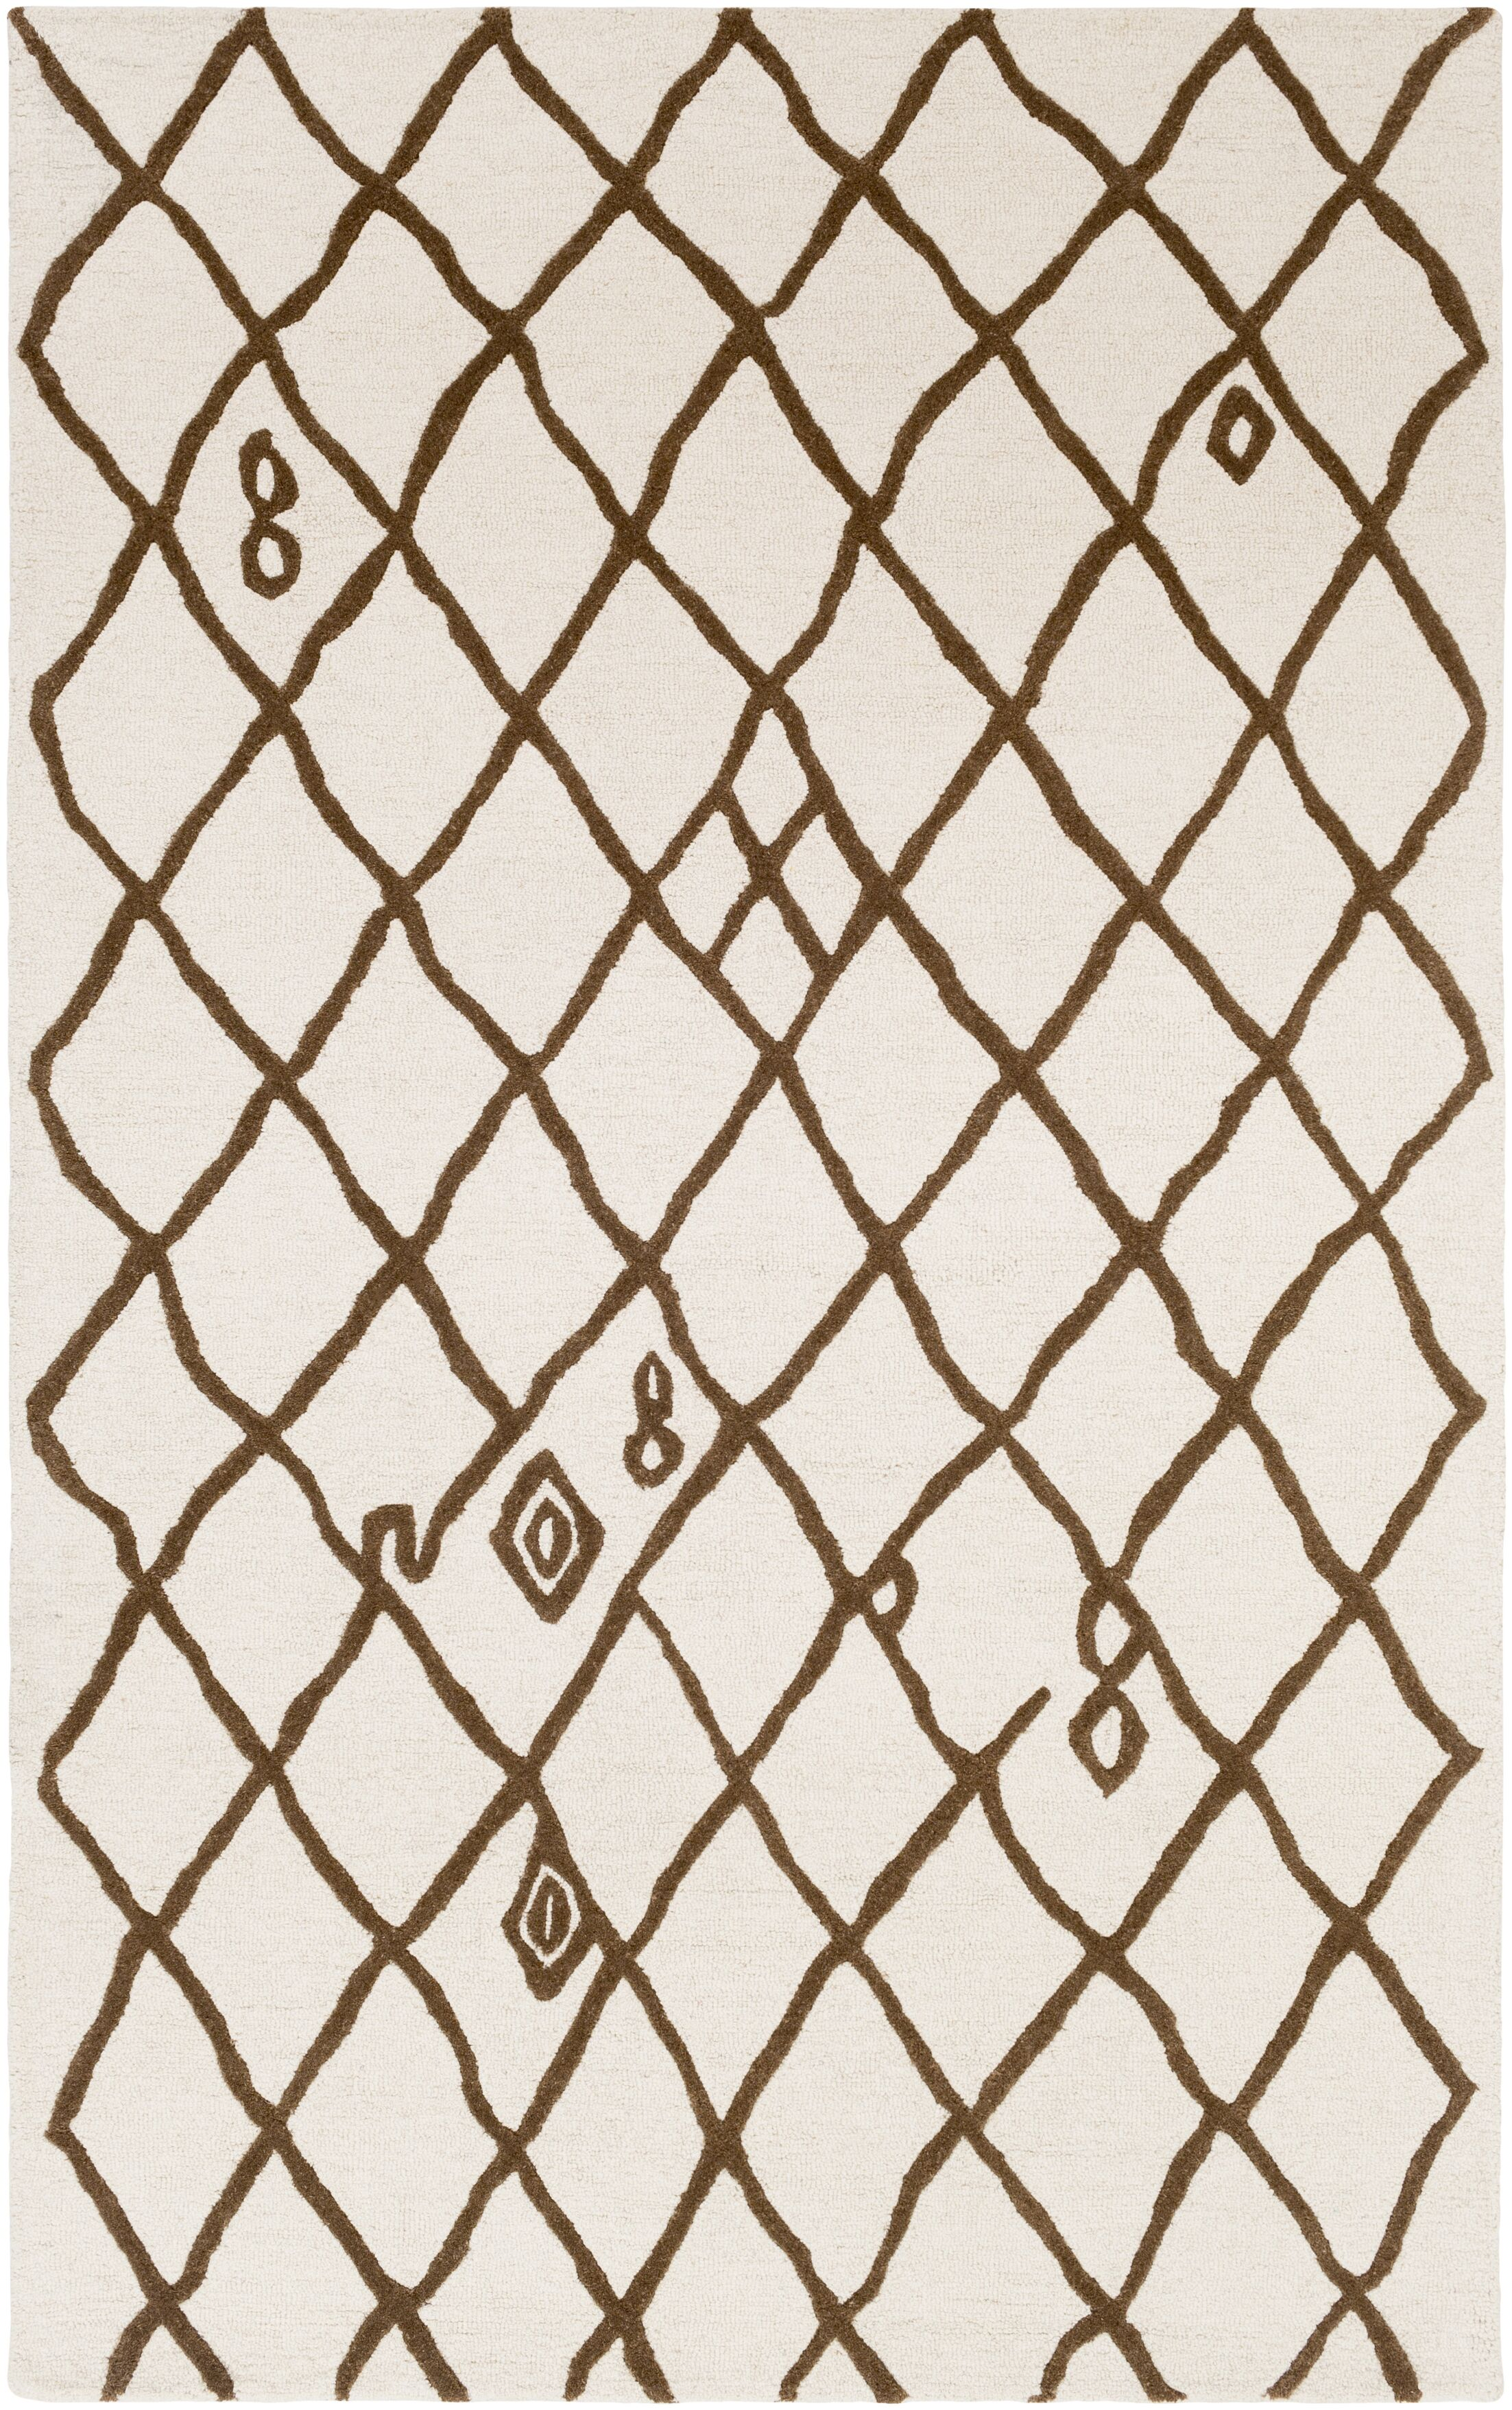 Juergens Hand-Tufted Ivory Area Rug Rug Size: Rectangle 5' x 8'